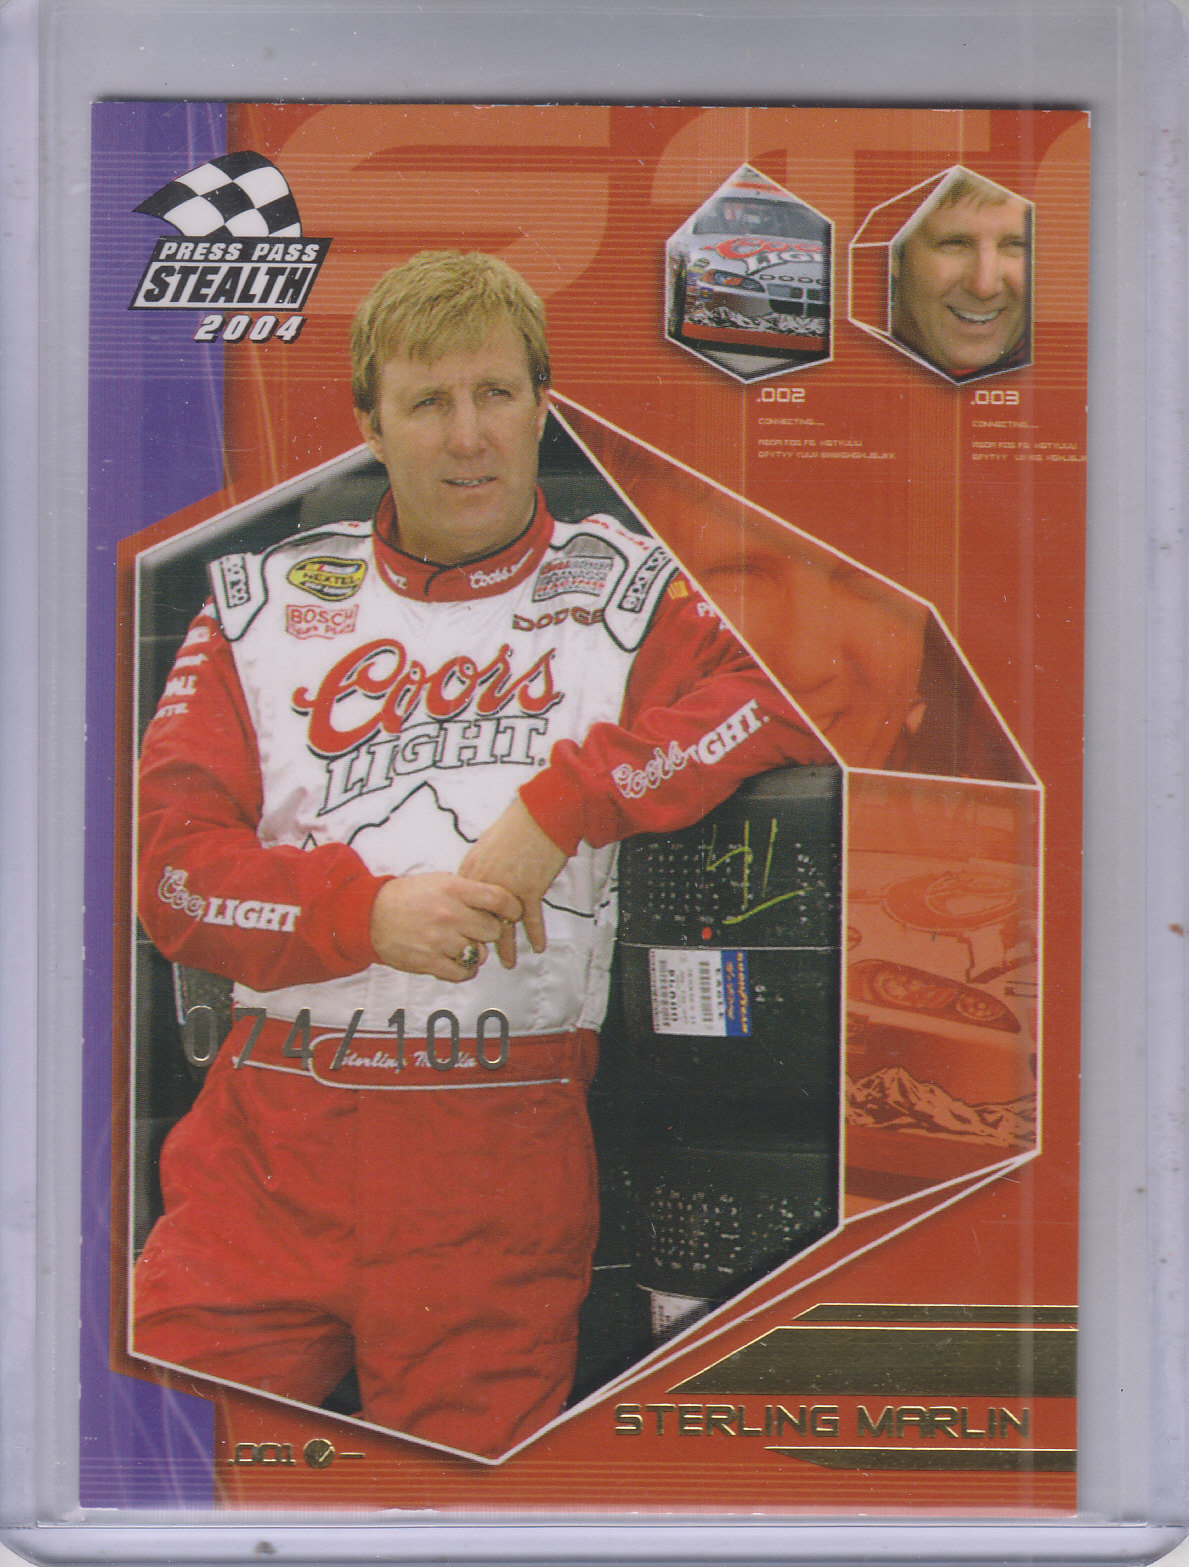 2004 Press Pass Stealth X-Ray #13 Sterling Marlin